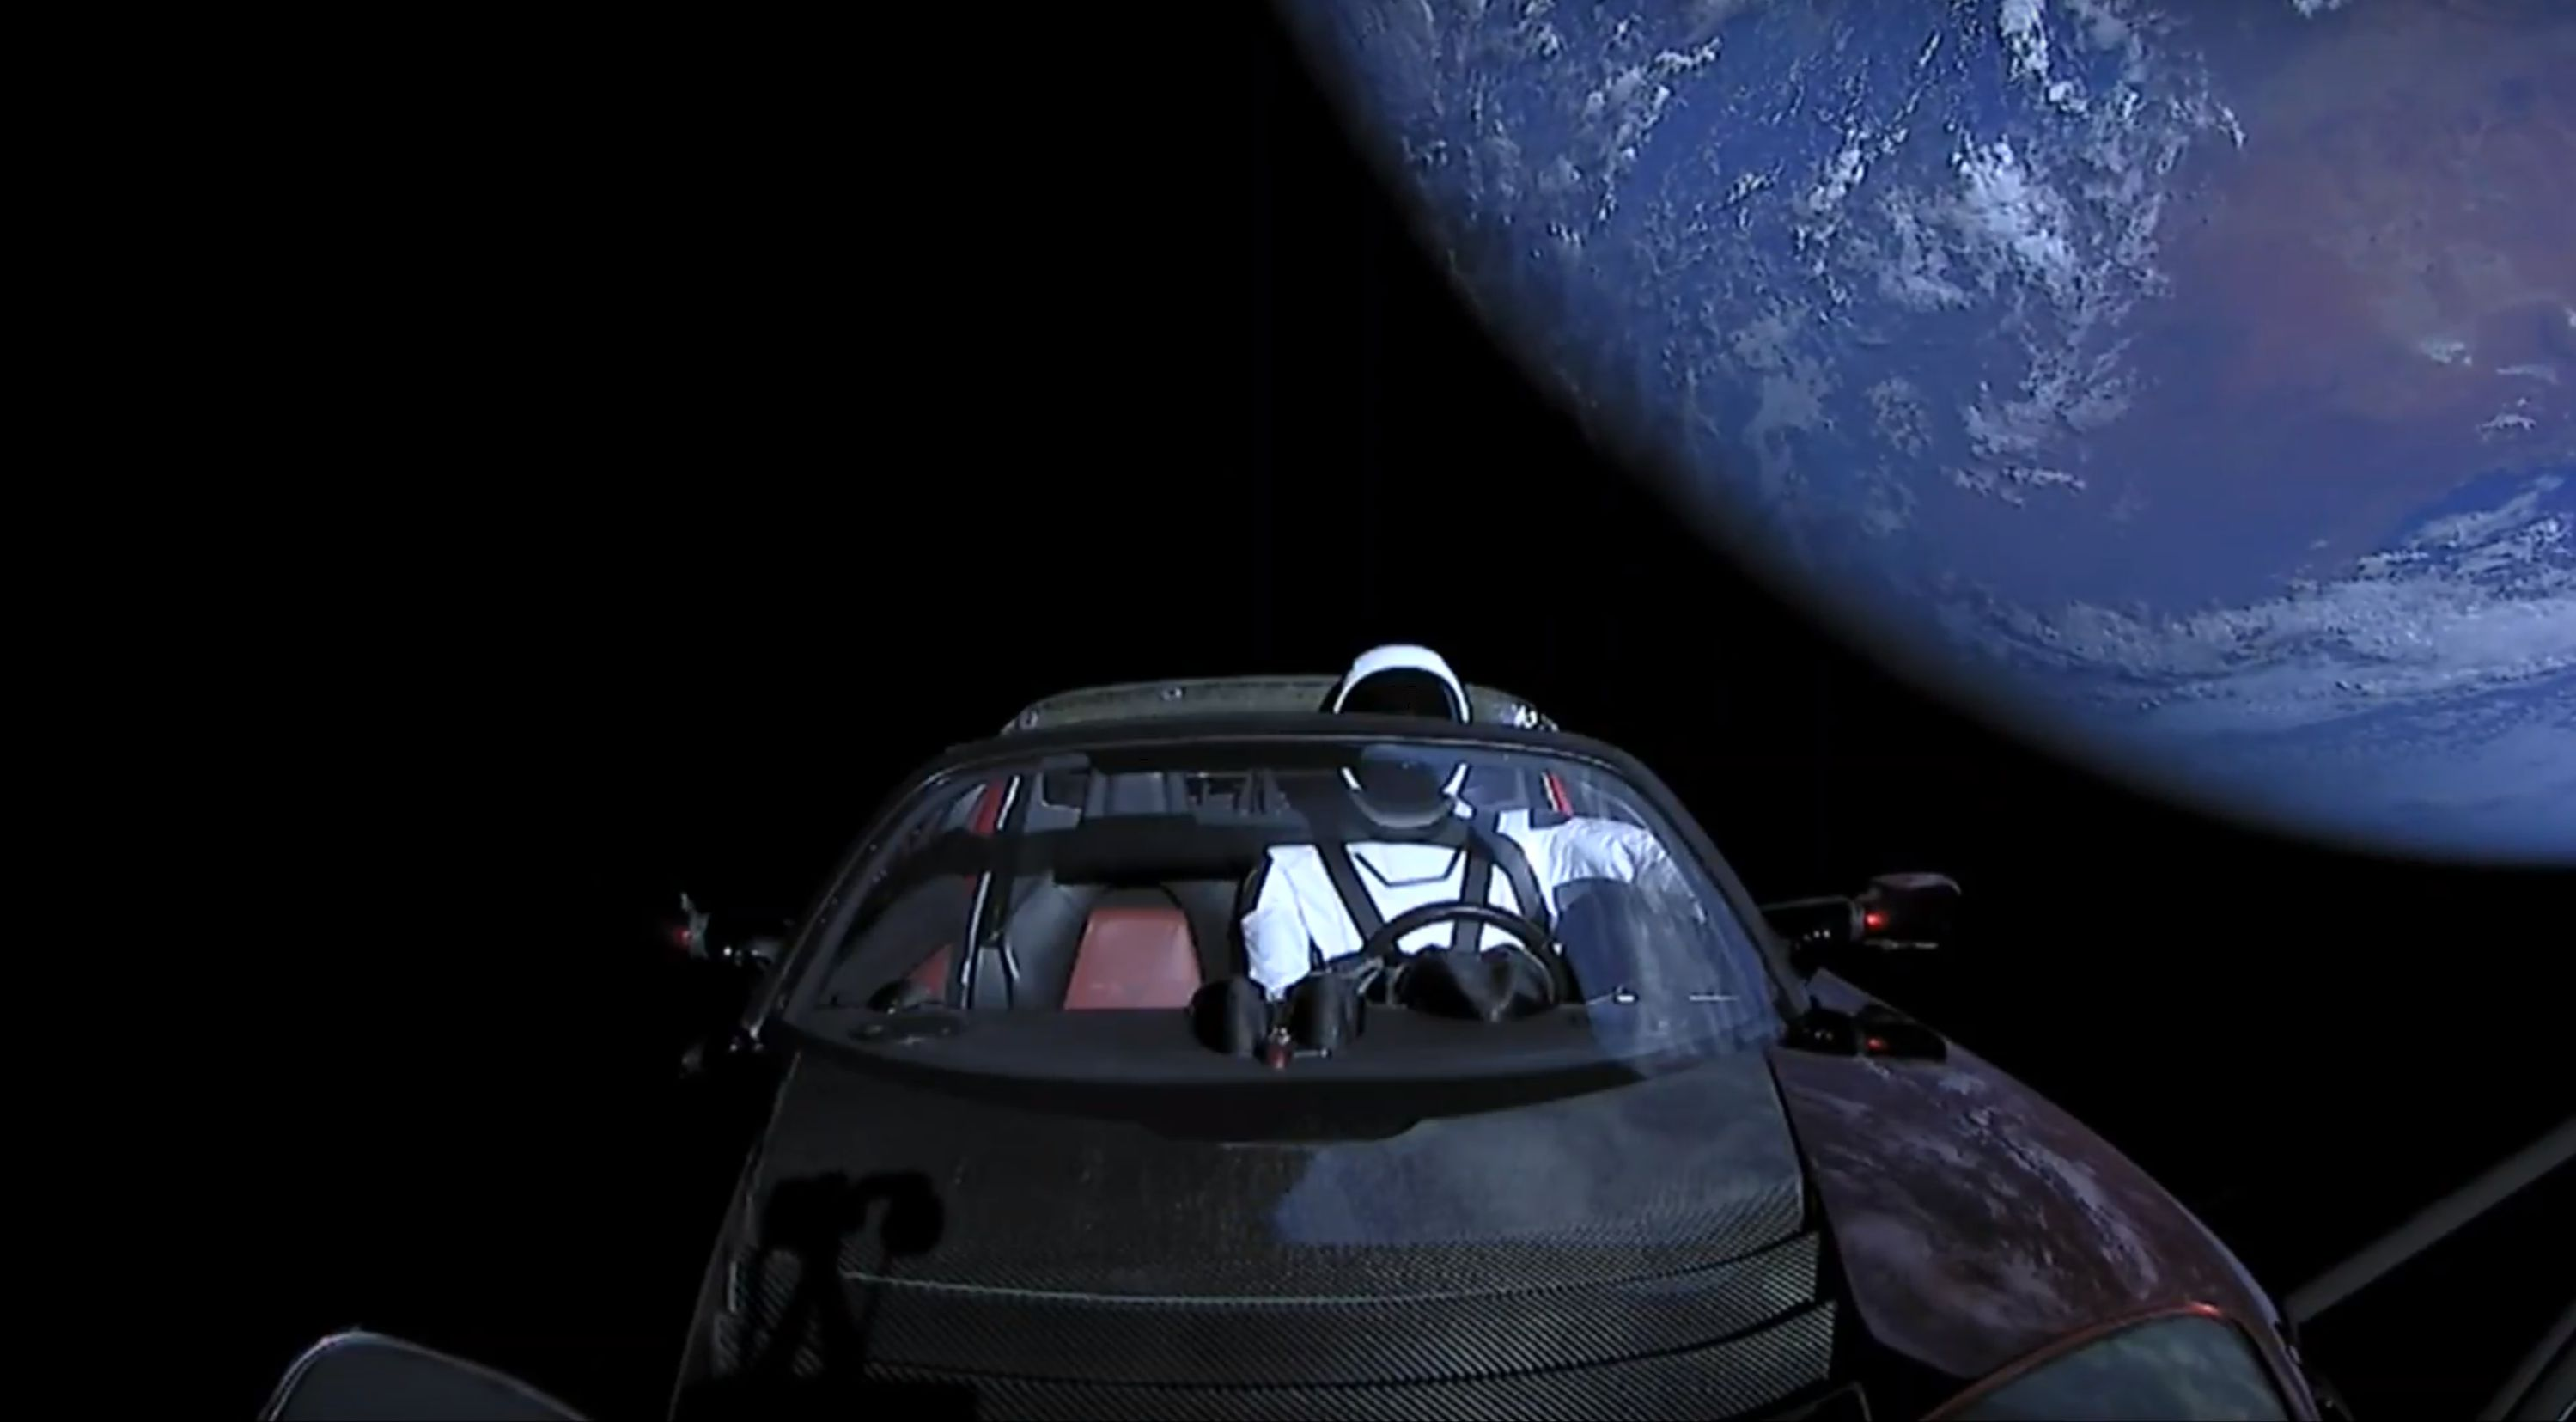 What Will Happen To Elon Musk S Tesla On Its Space Journey